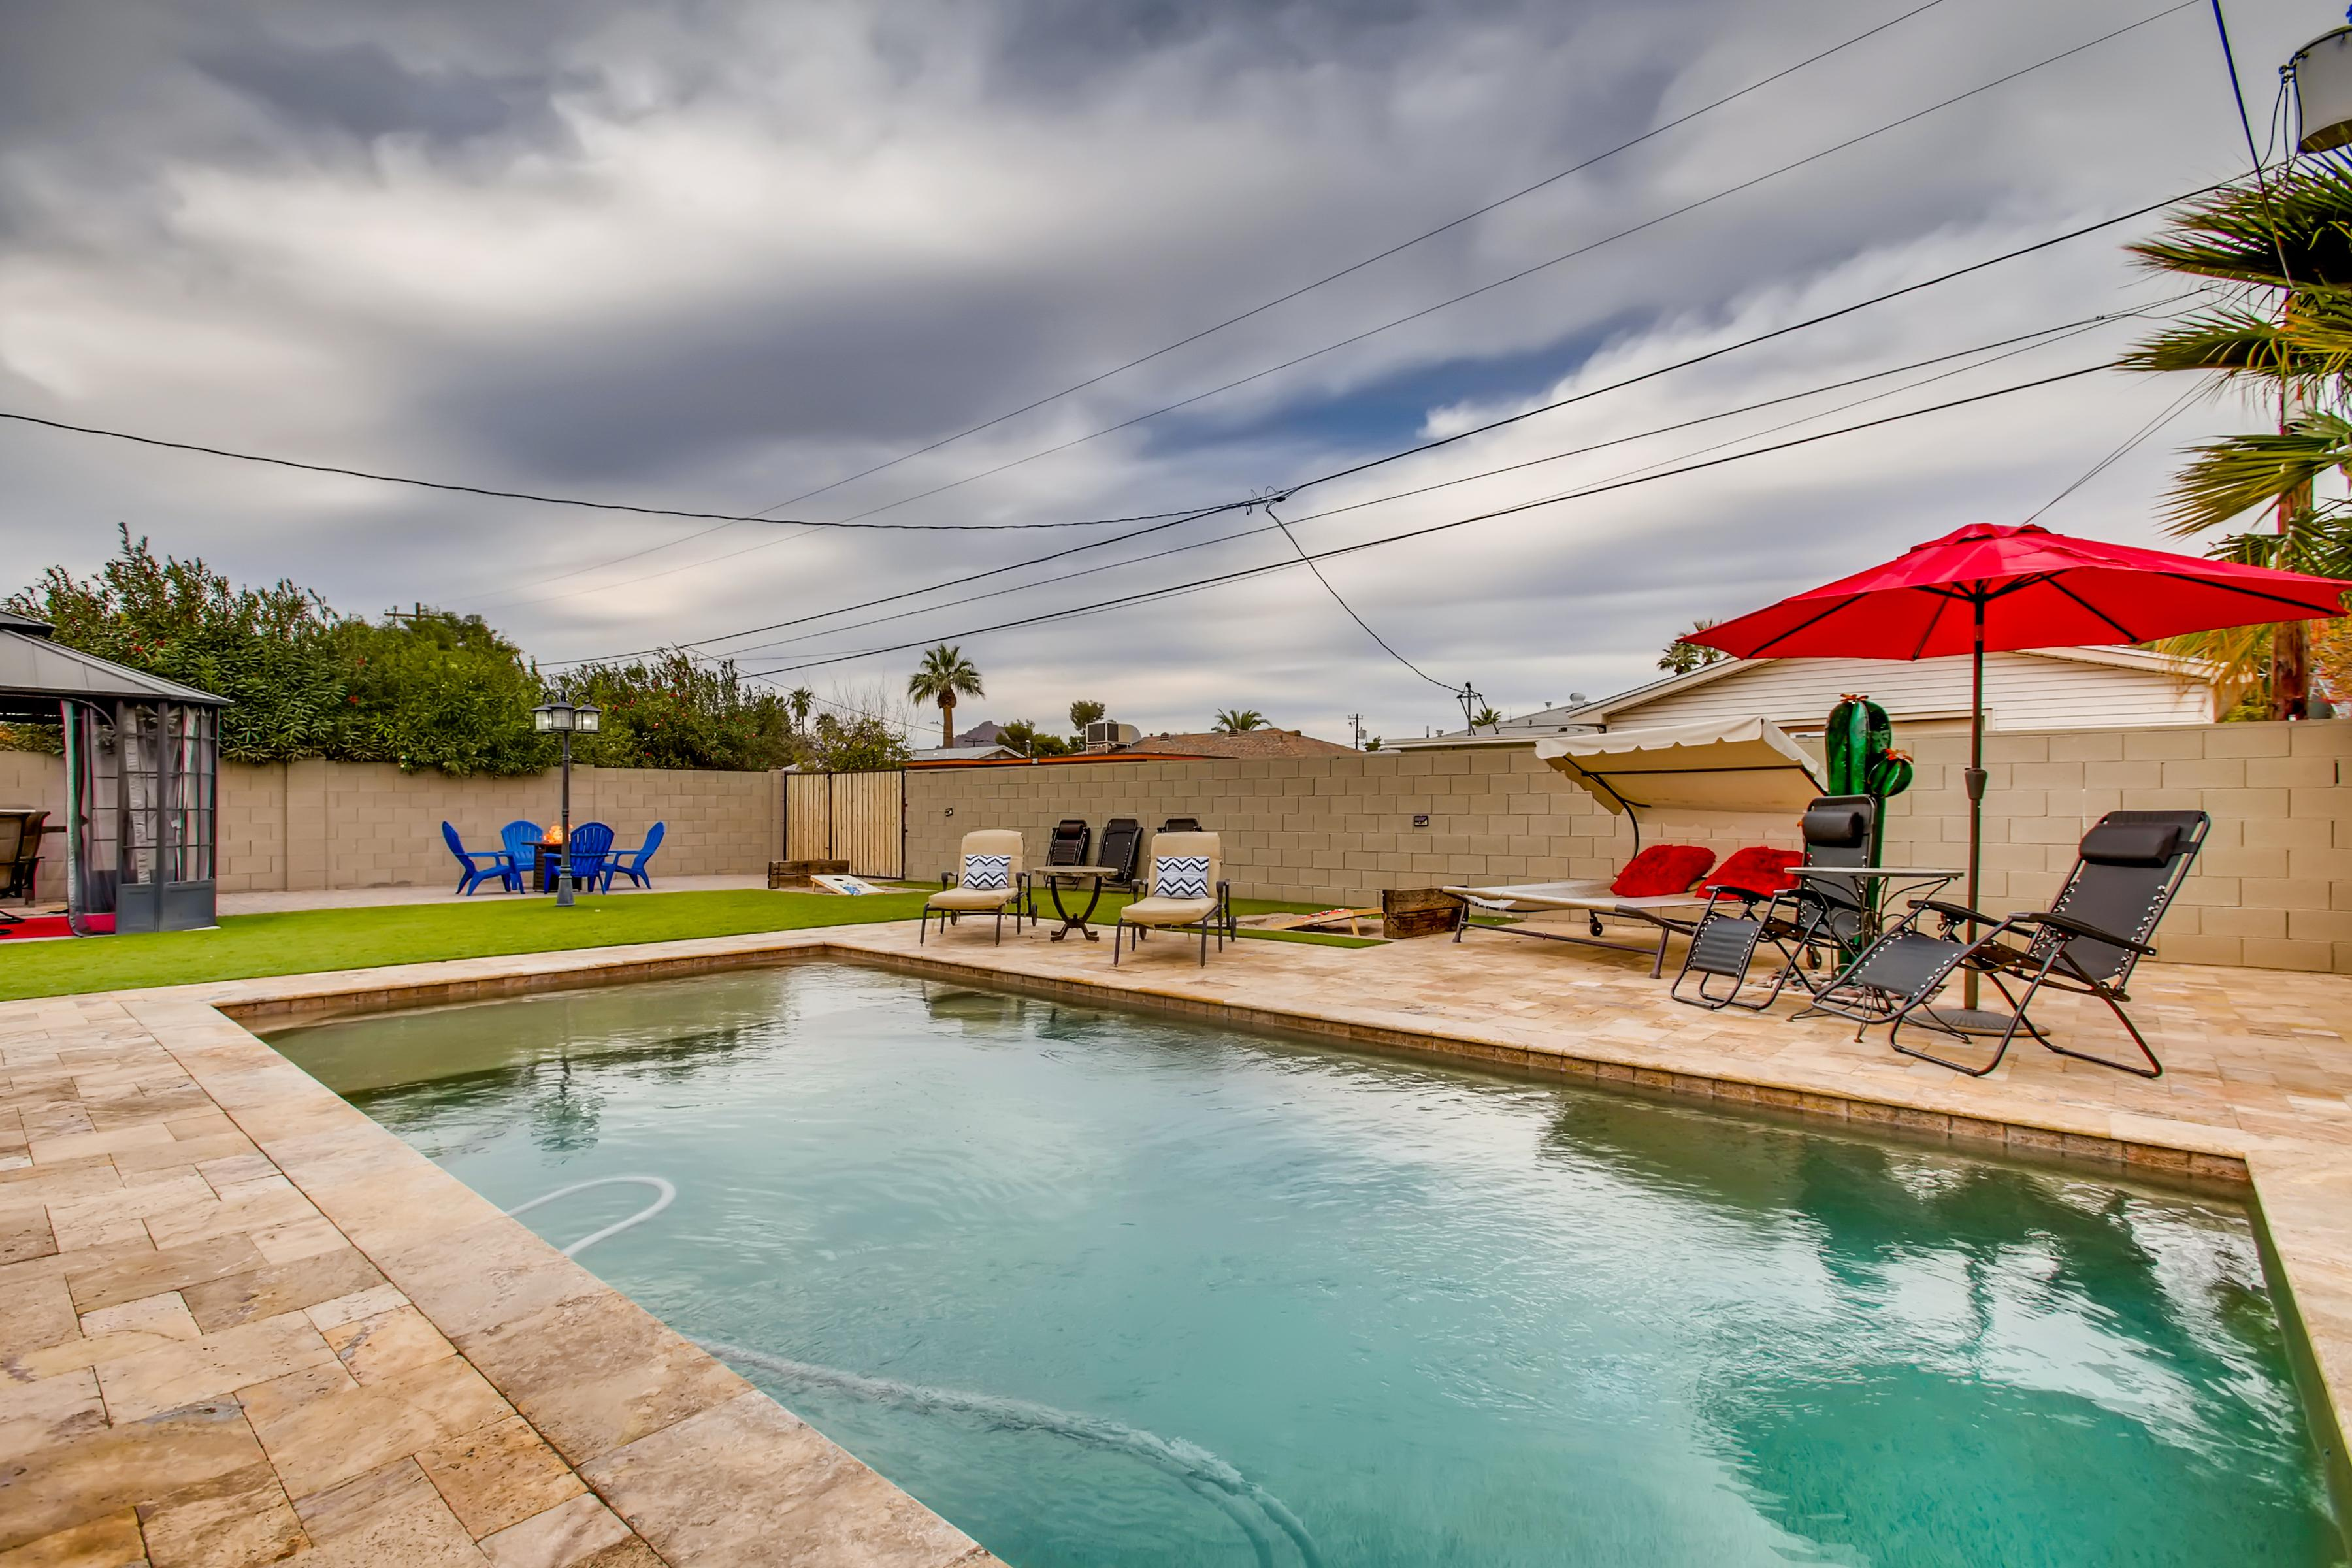 Property Image 2 - SUNSUNSET VIBES in OLD TOWN with HEATED POOL & PET FRIENDLY